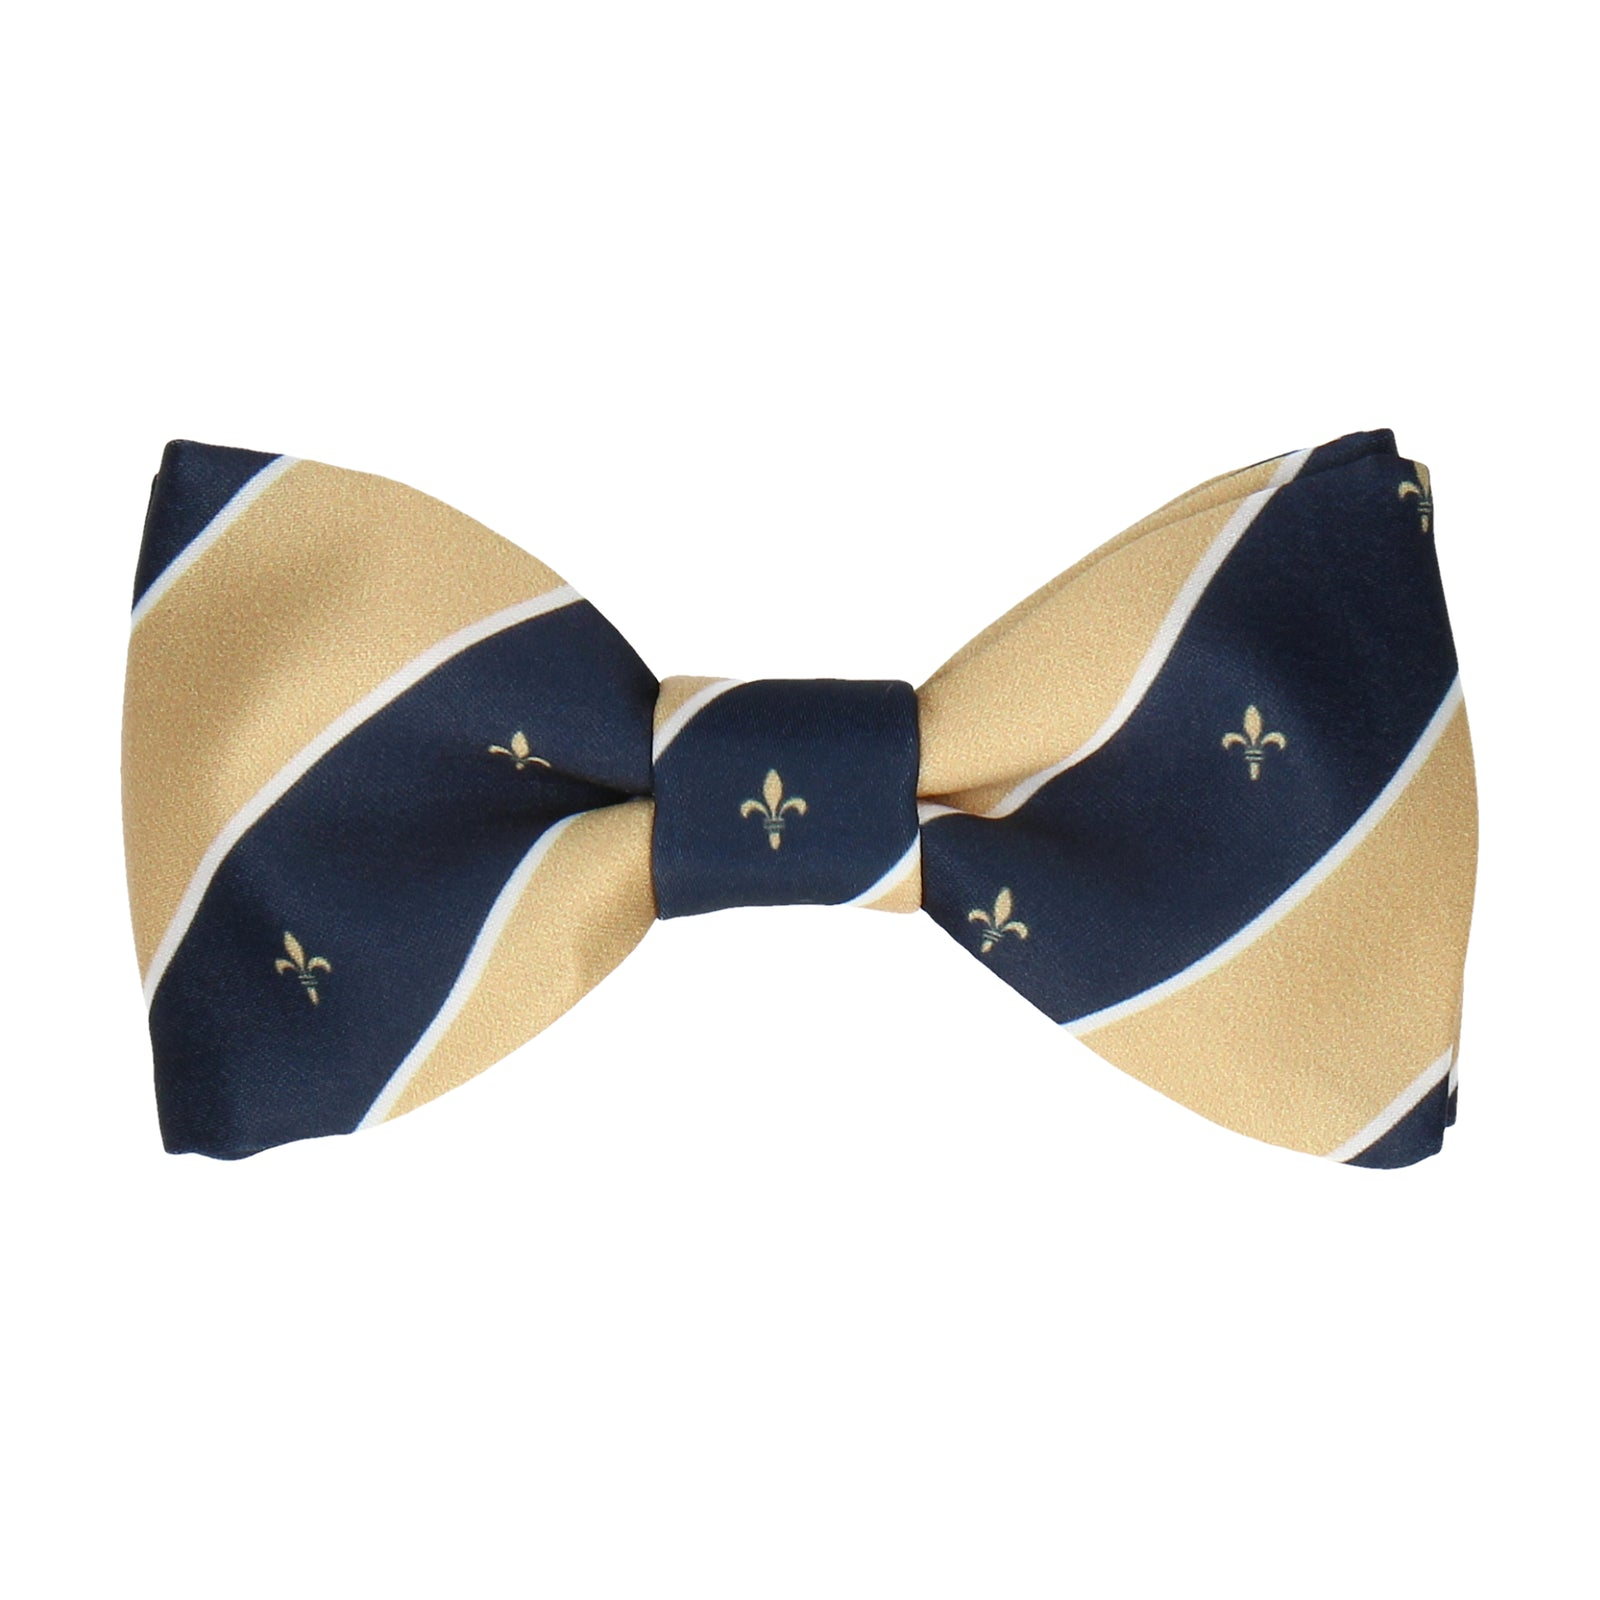 Mountbatten in Soft Gold Bow Tie